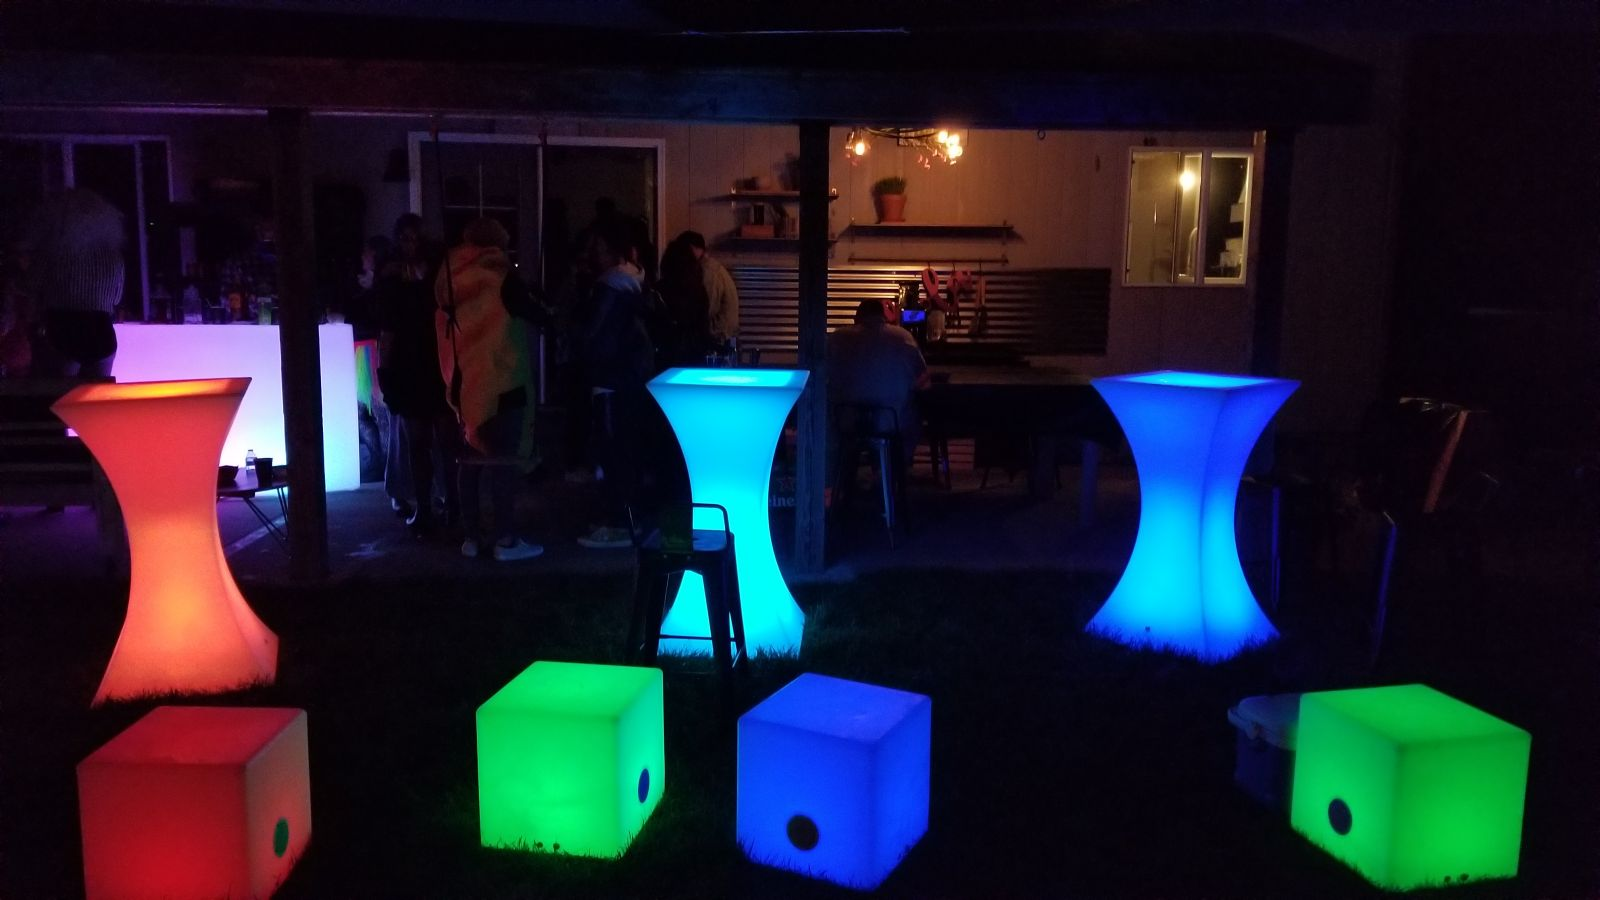 LED tables and cubes